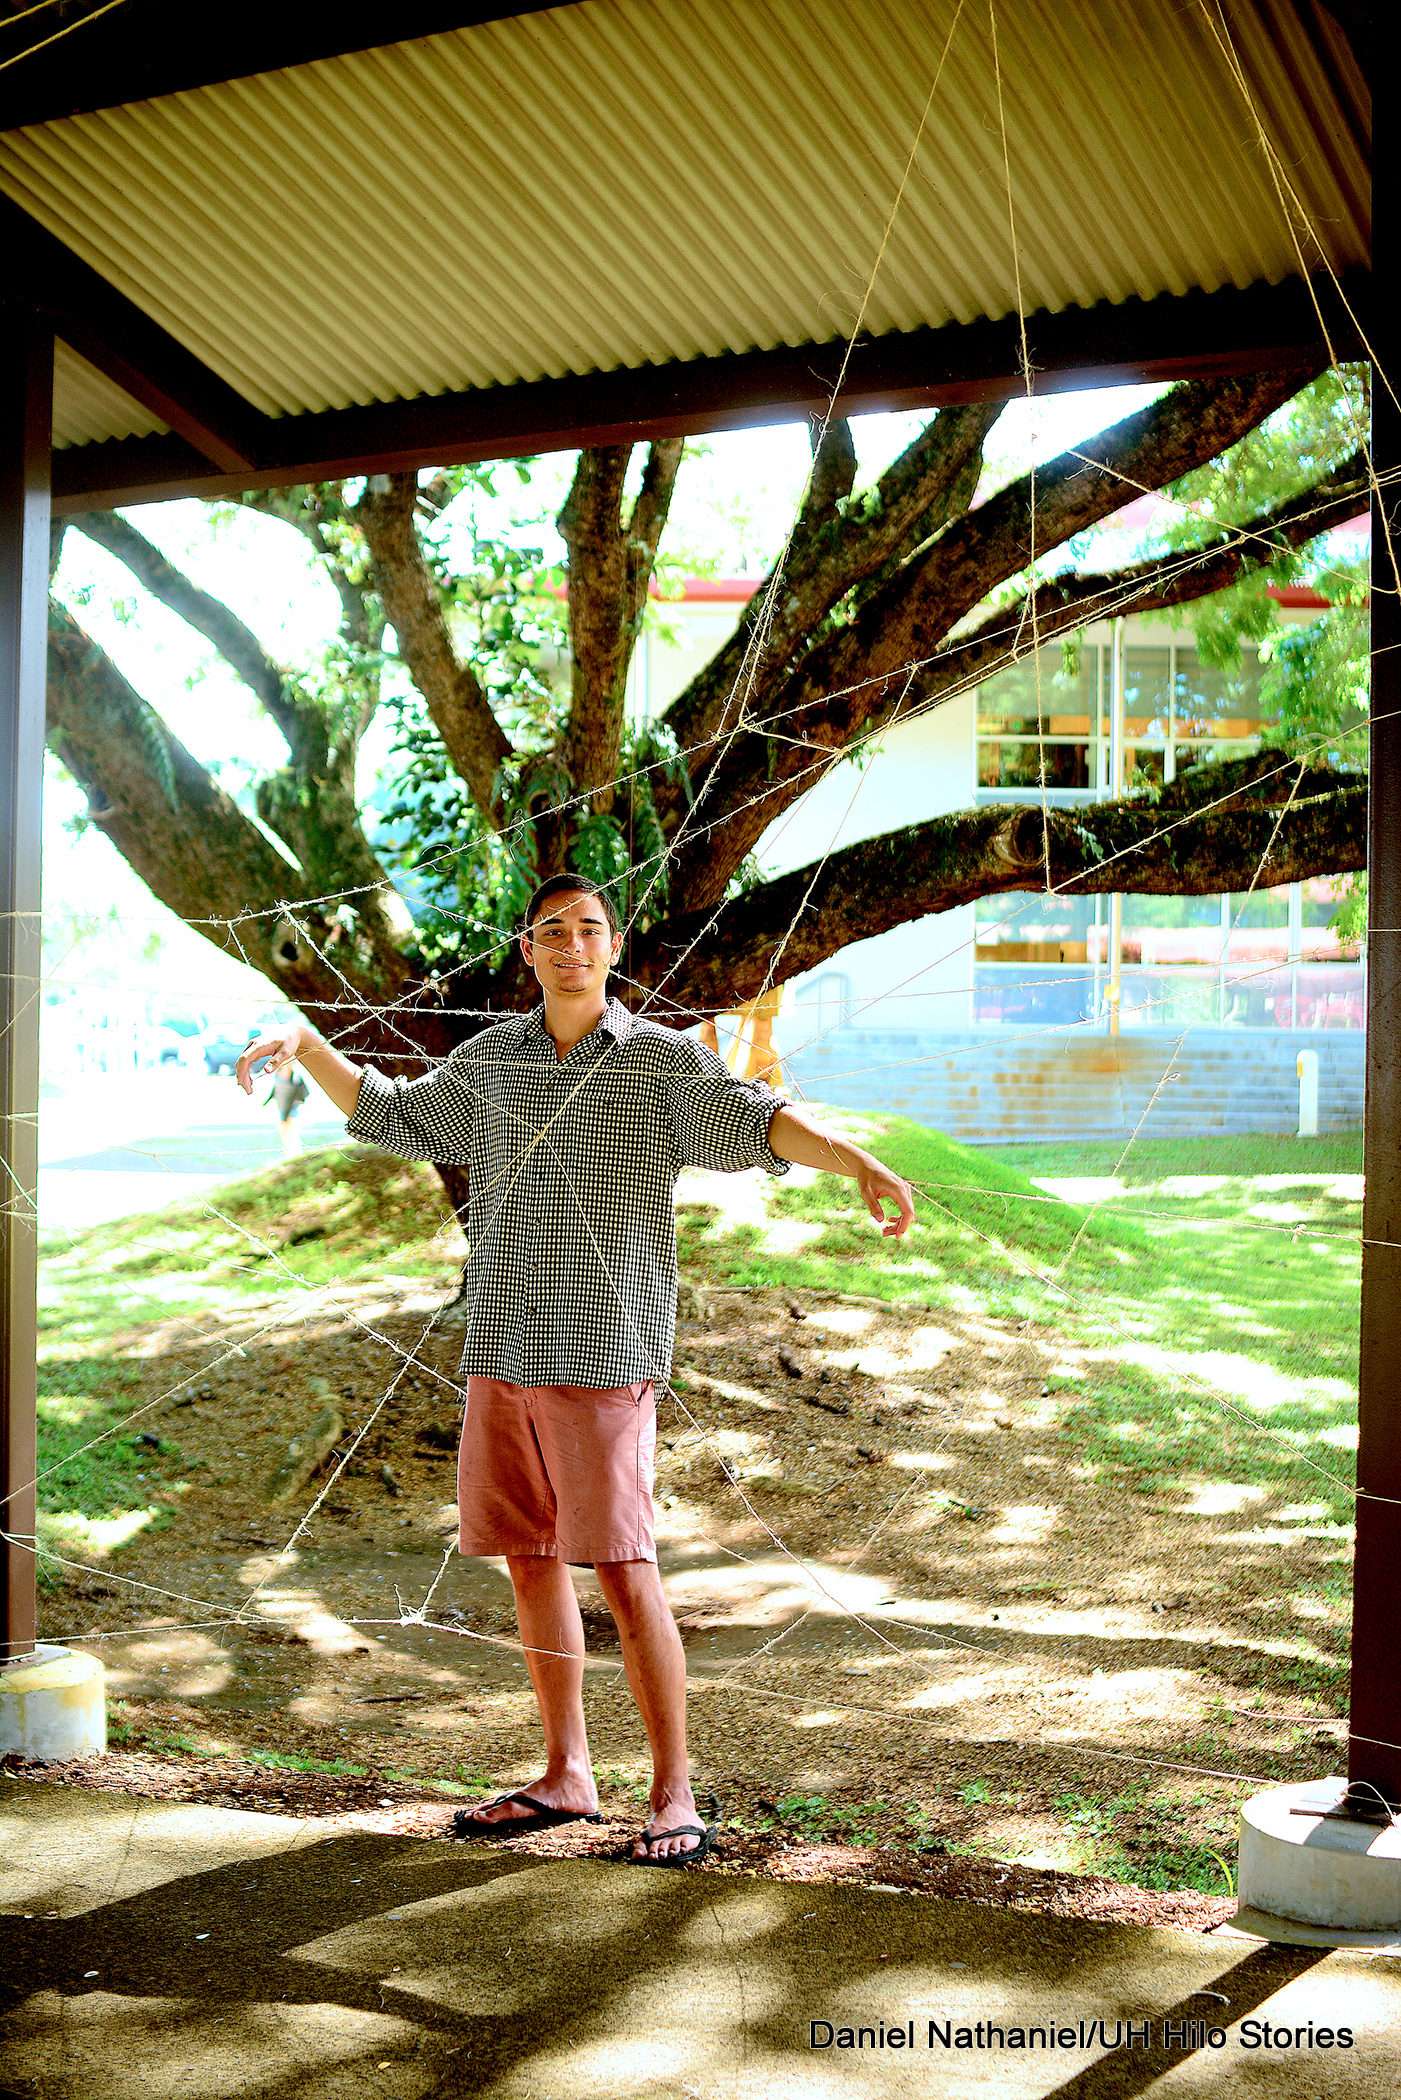 Cullen Mandrayar stands next to a large spider web made from string, with his legs and arms caught in the web.